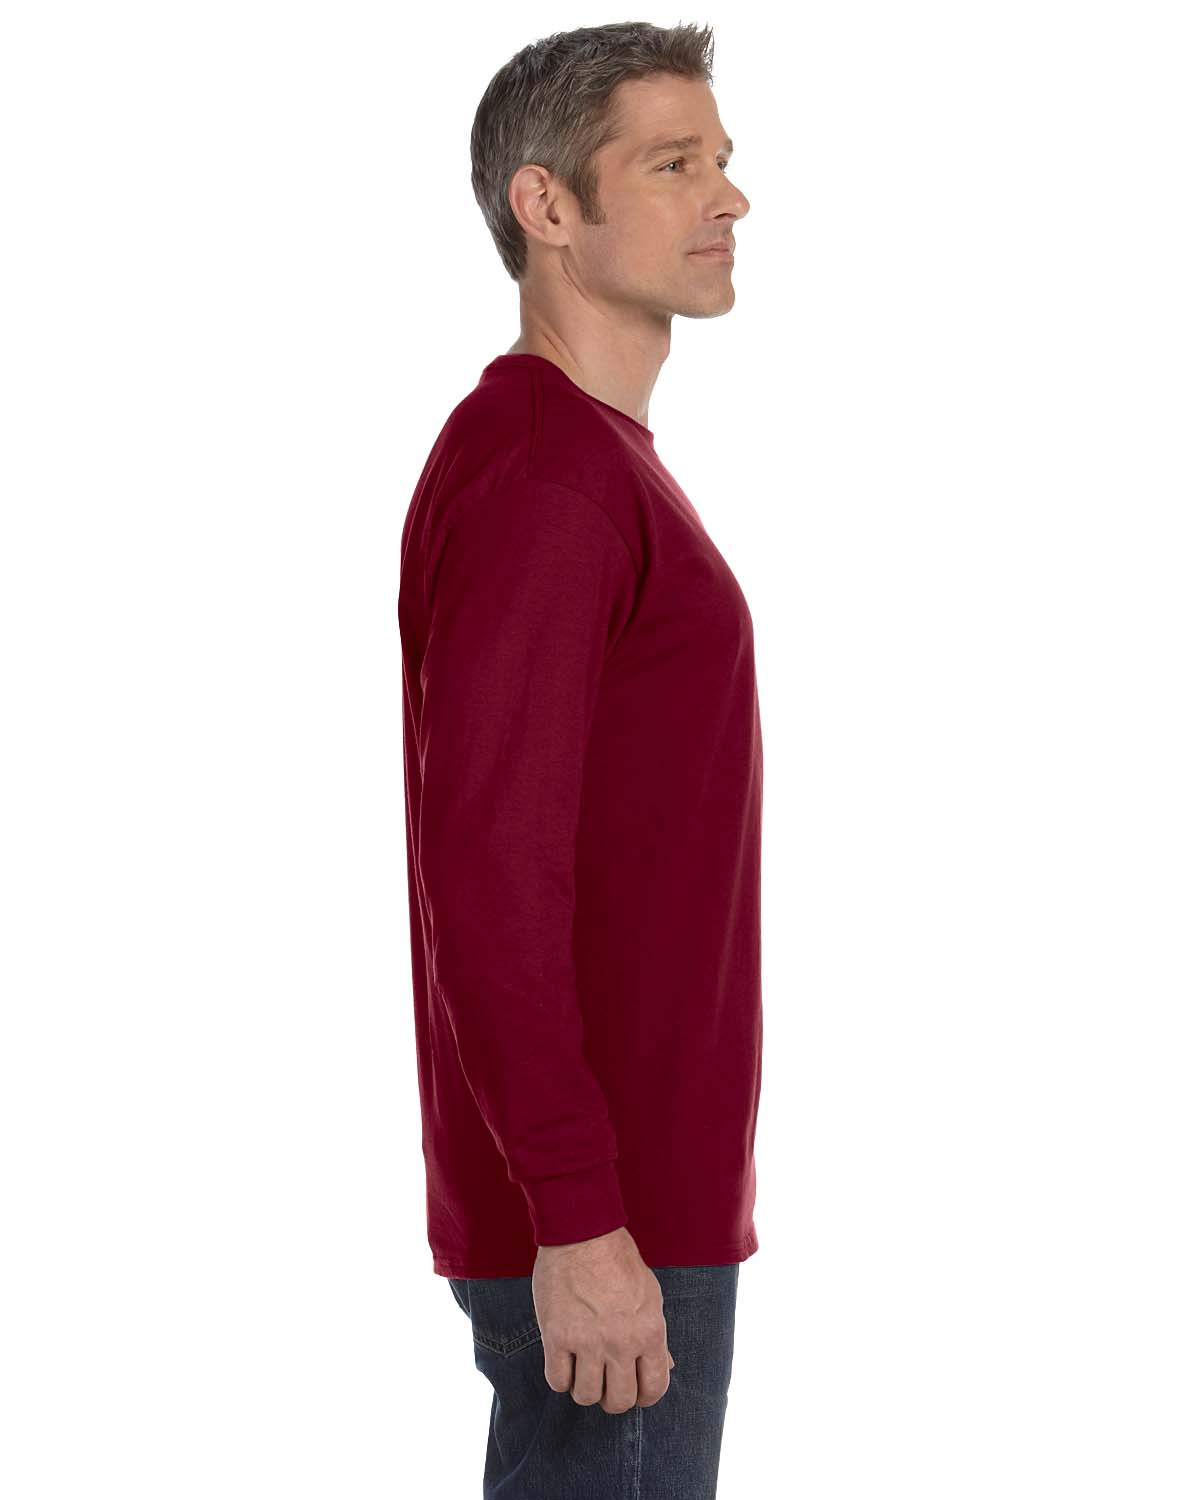 Gildan-Mens-T-Shirt-Long-Sleeve-Heavy-Cotton-5-3-oz-S-XL-R-G540-5400 thumbnail 21